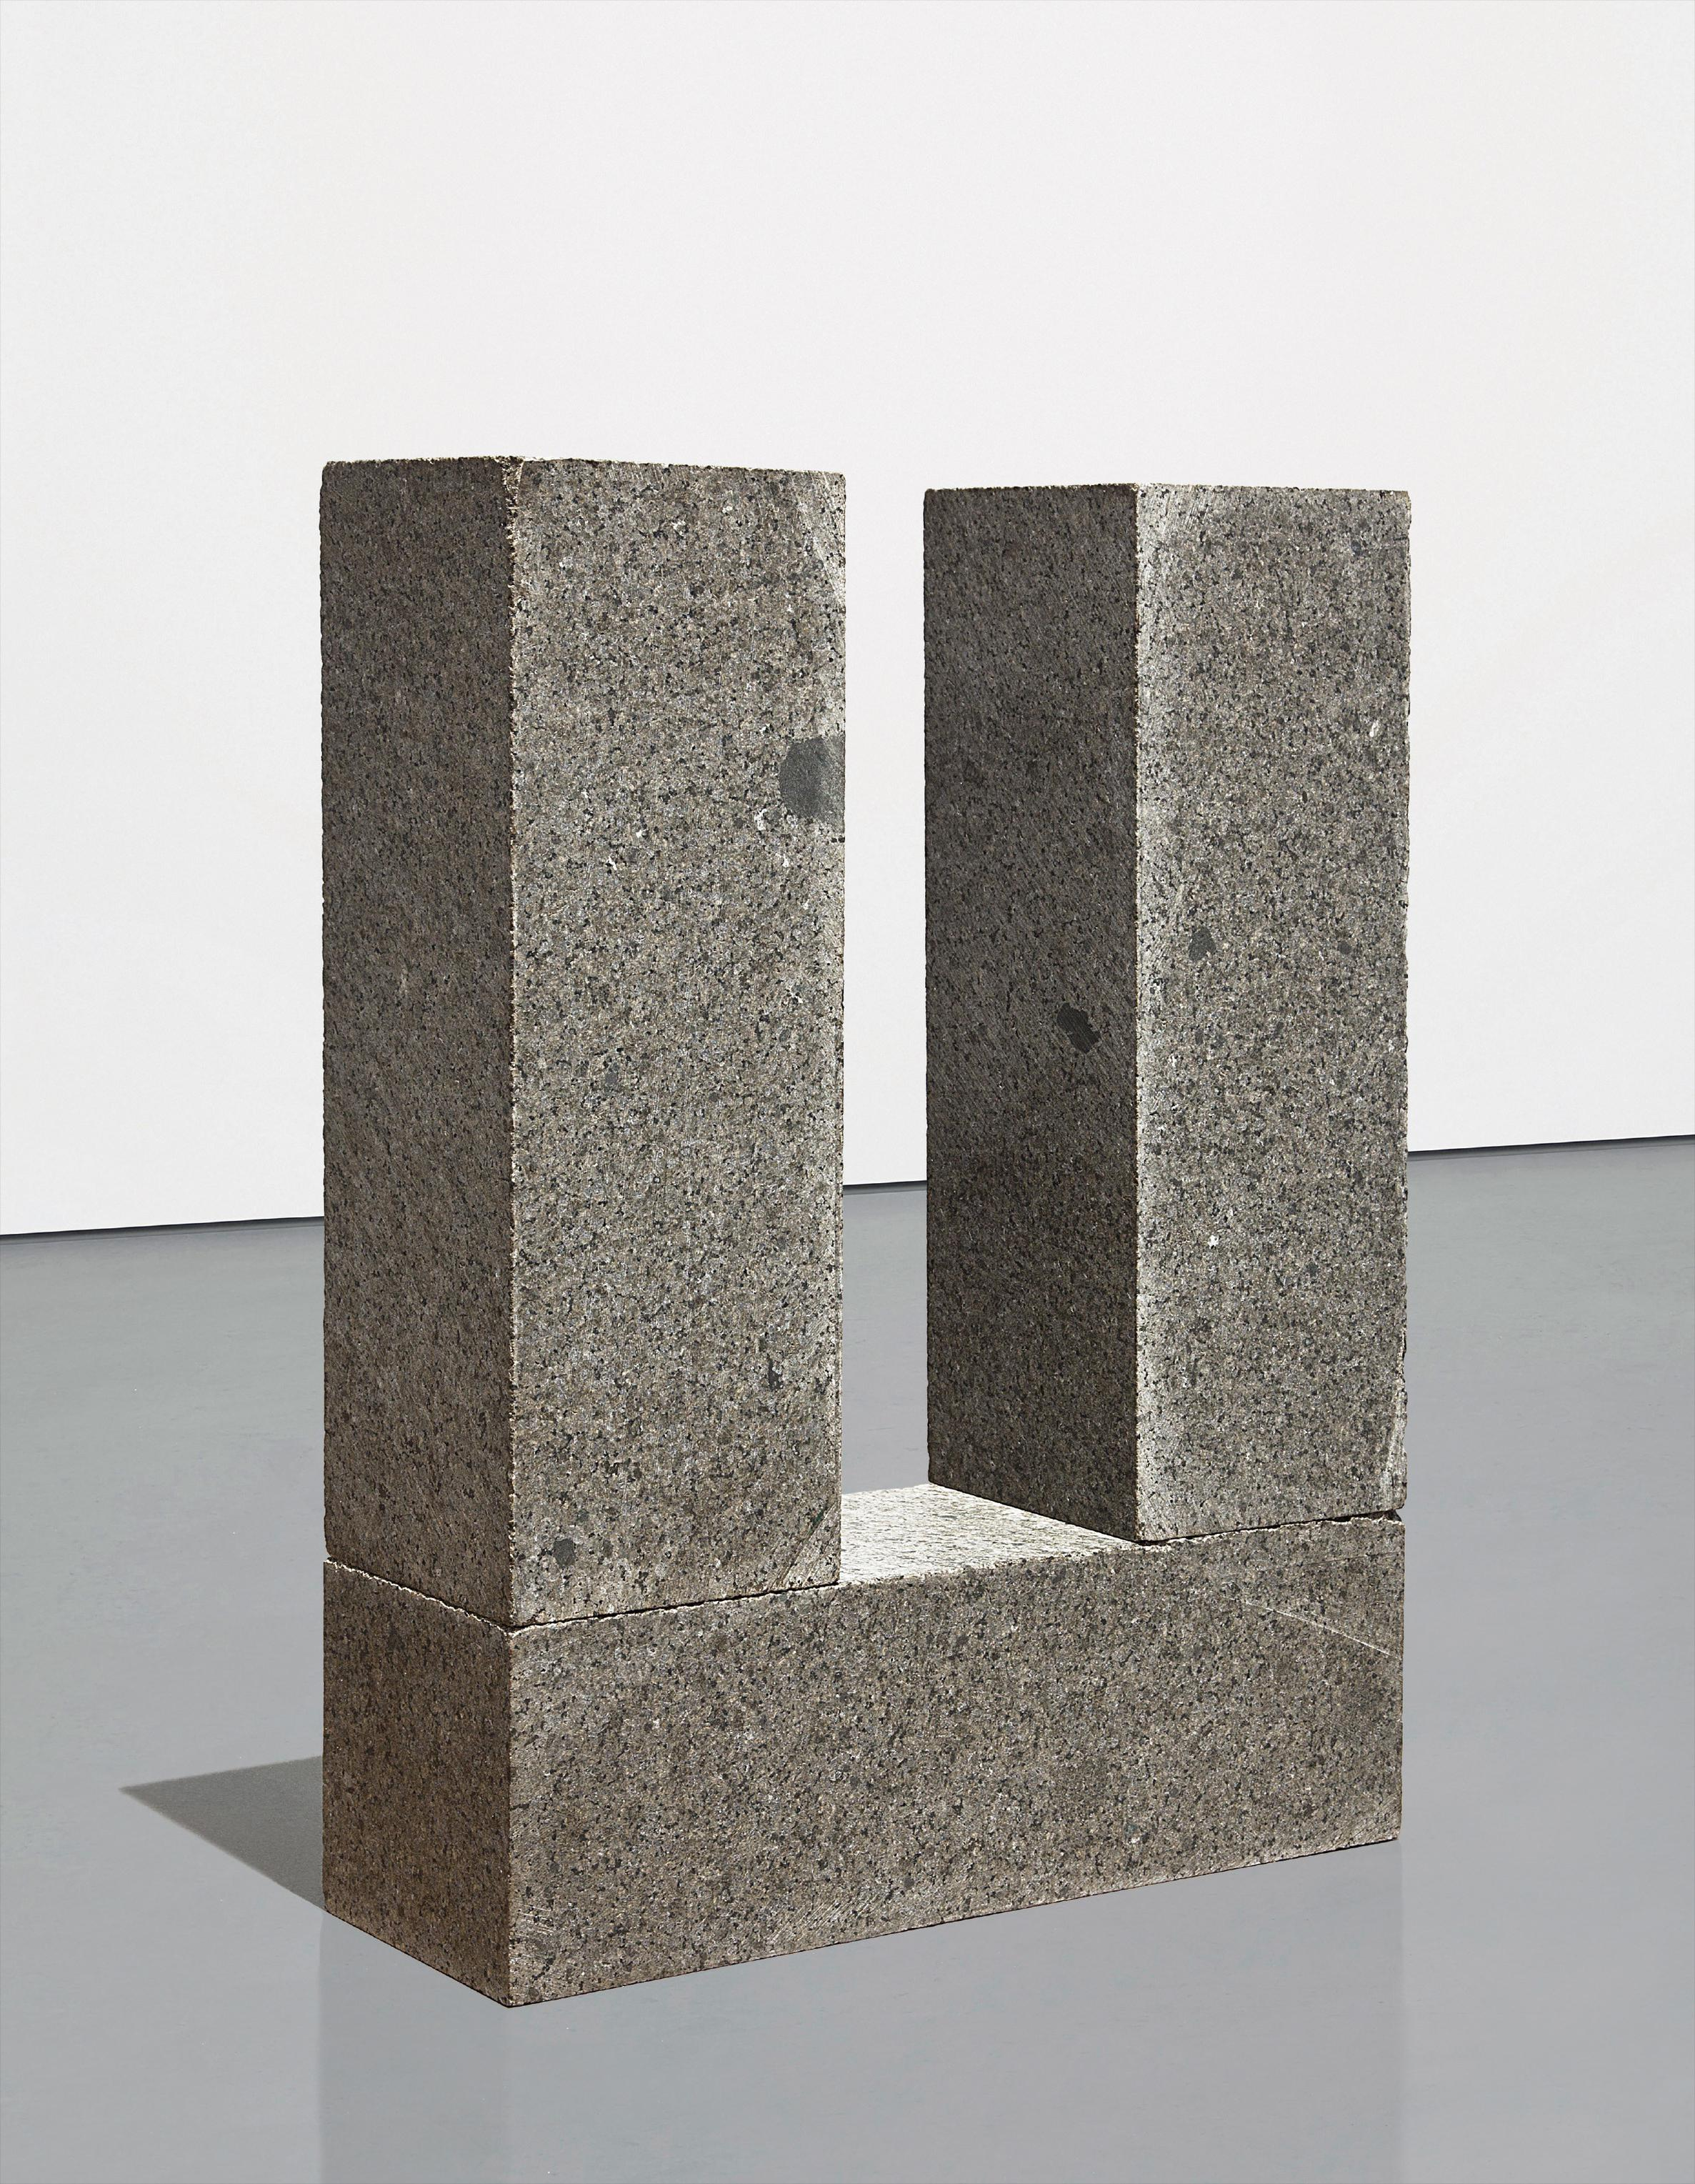 Carl Andre-Manet Post And Threshold-1980